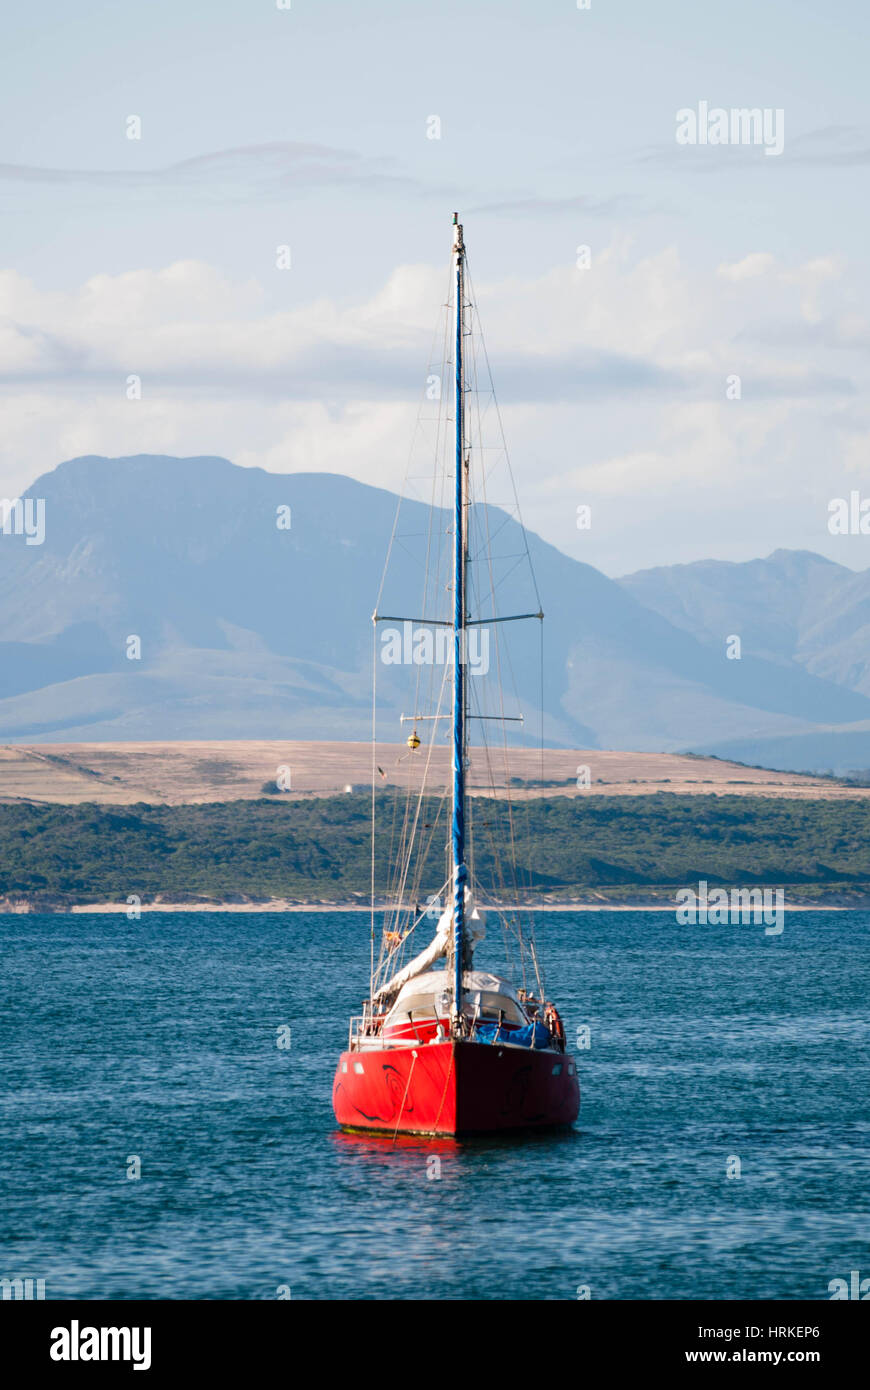 A red yacht on a calm ocean in Mossel Bay, South Africa - Stock Image